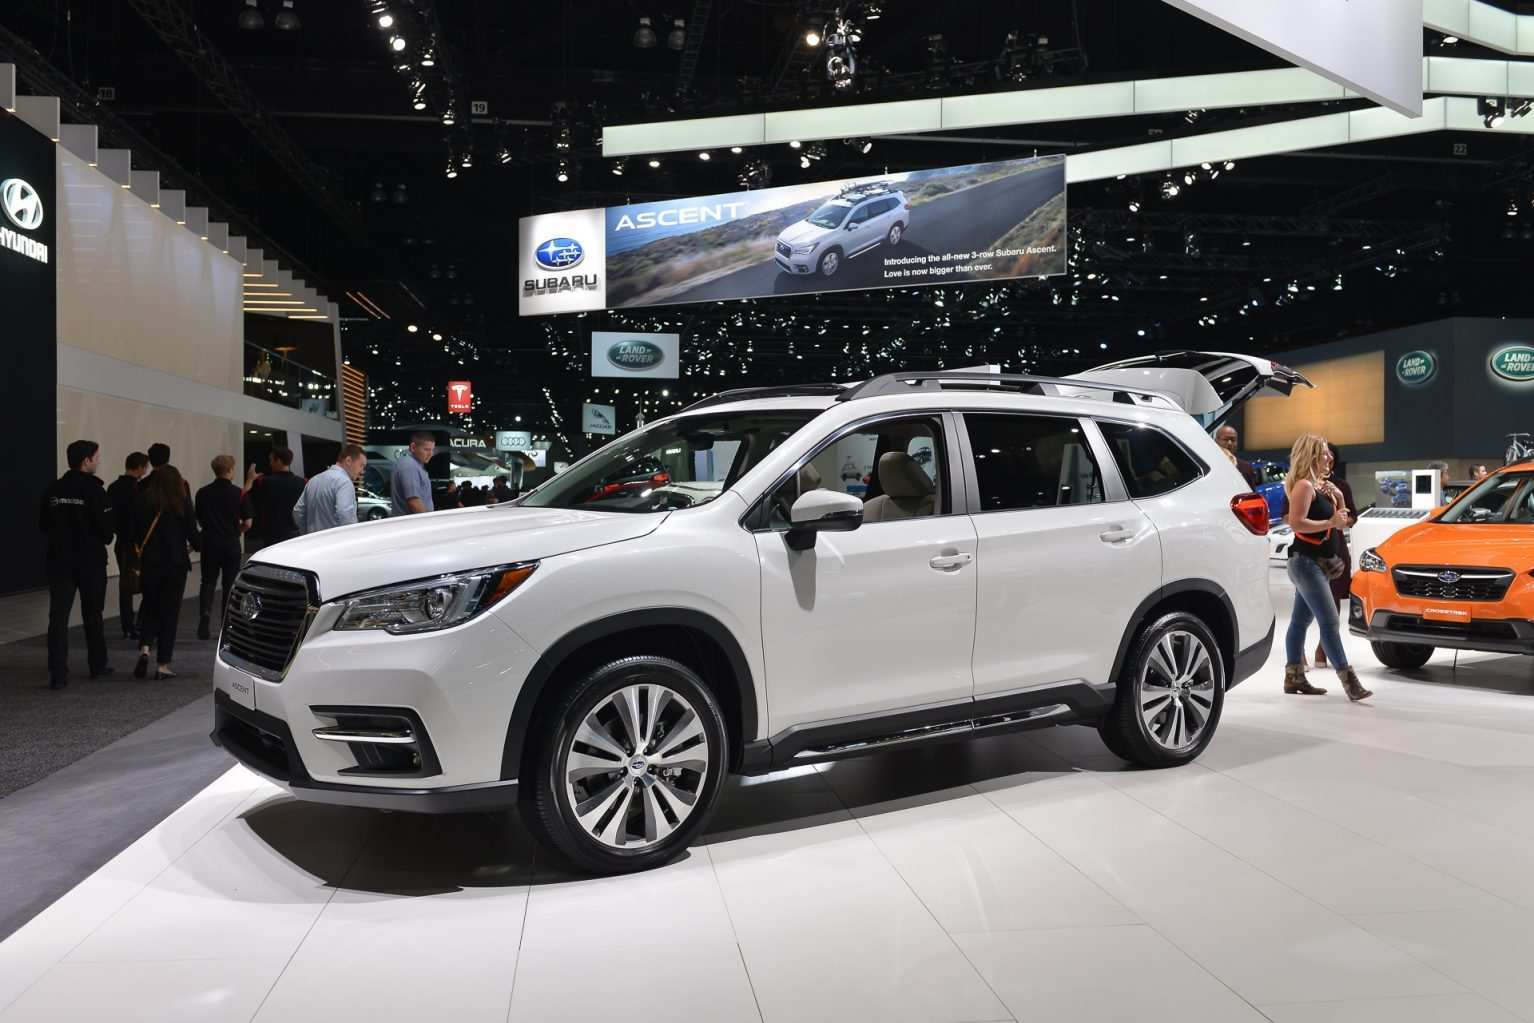 86 New Subaru Tribeca 2019 Engine for Subaru Tribeca 2019